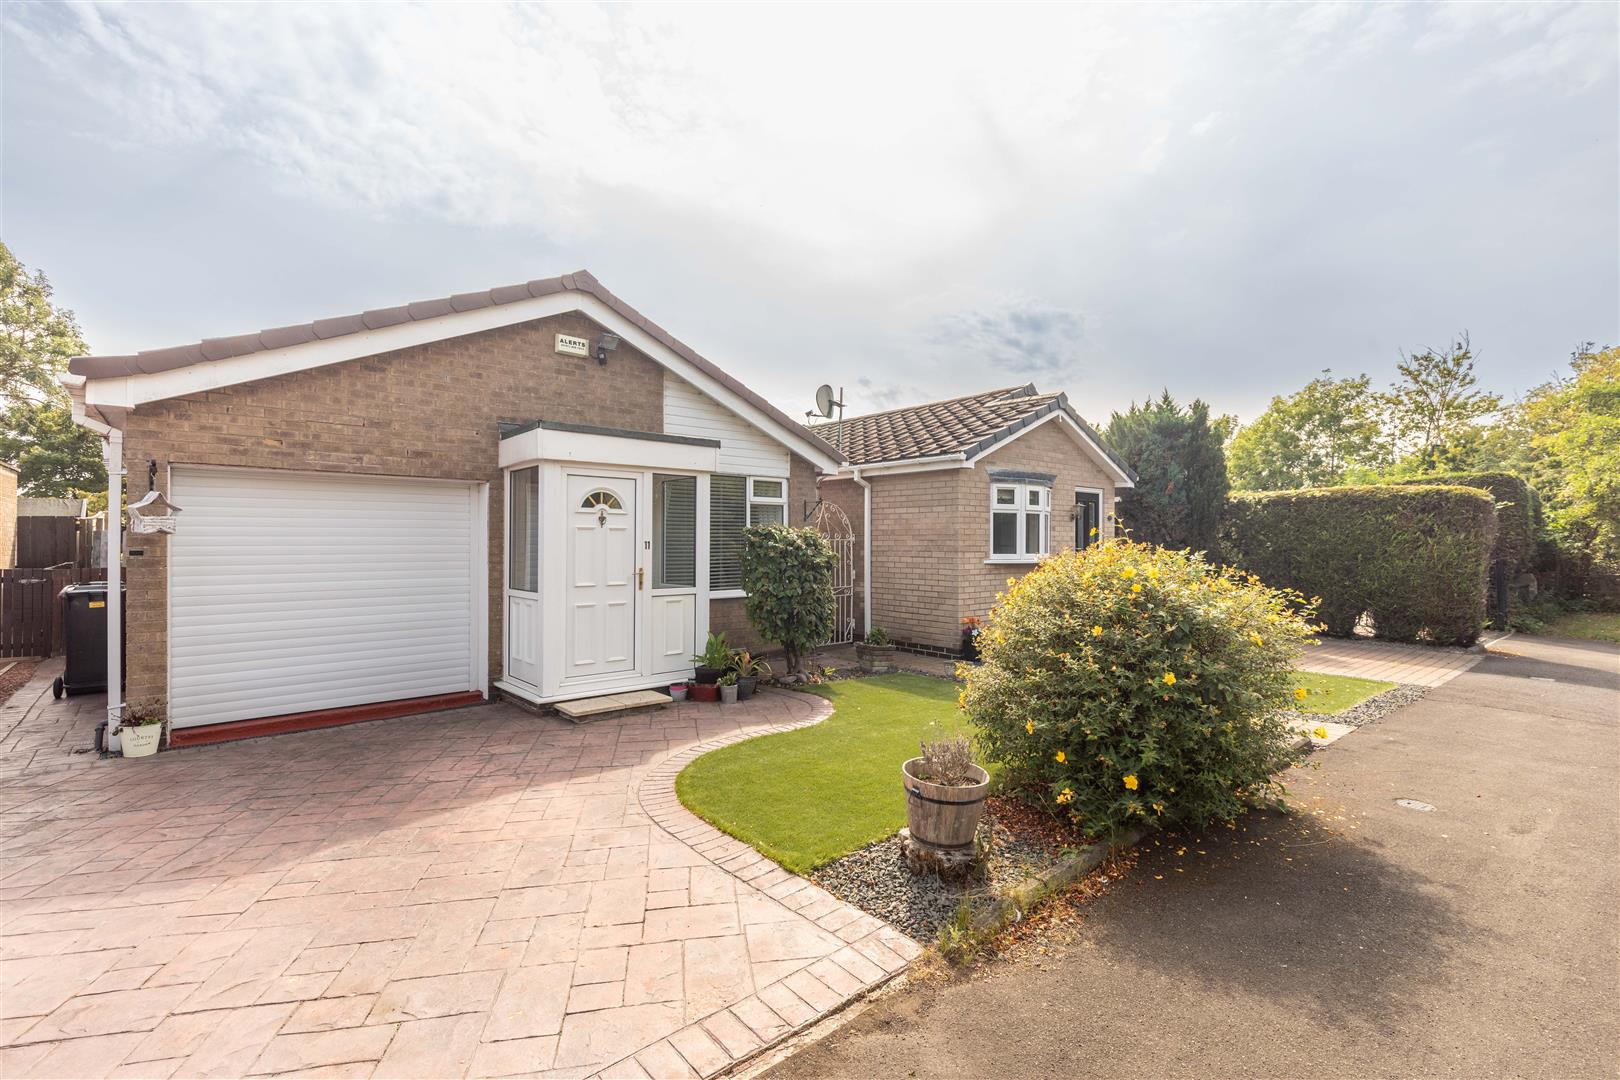 2 bed detached bungalow for sale in Newcastle Upon Tyne, NE13 7HX - Property Image 1